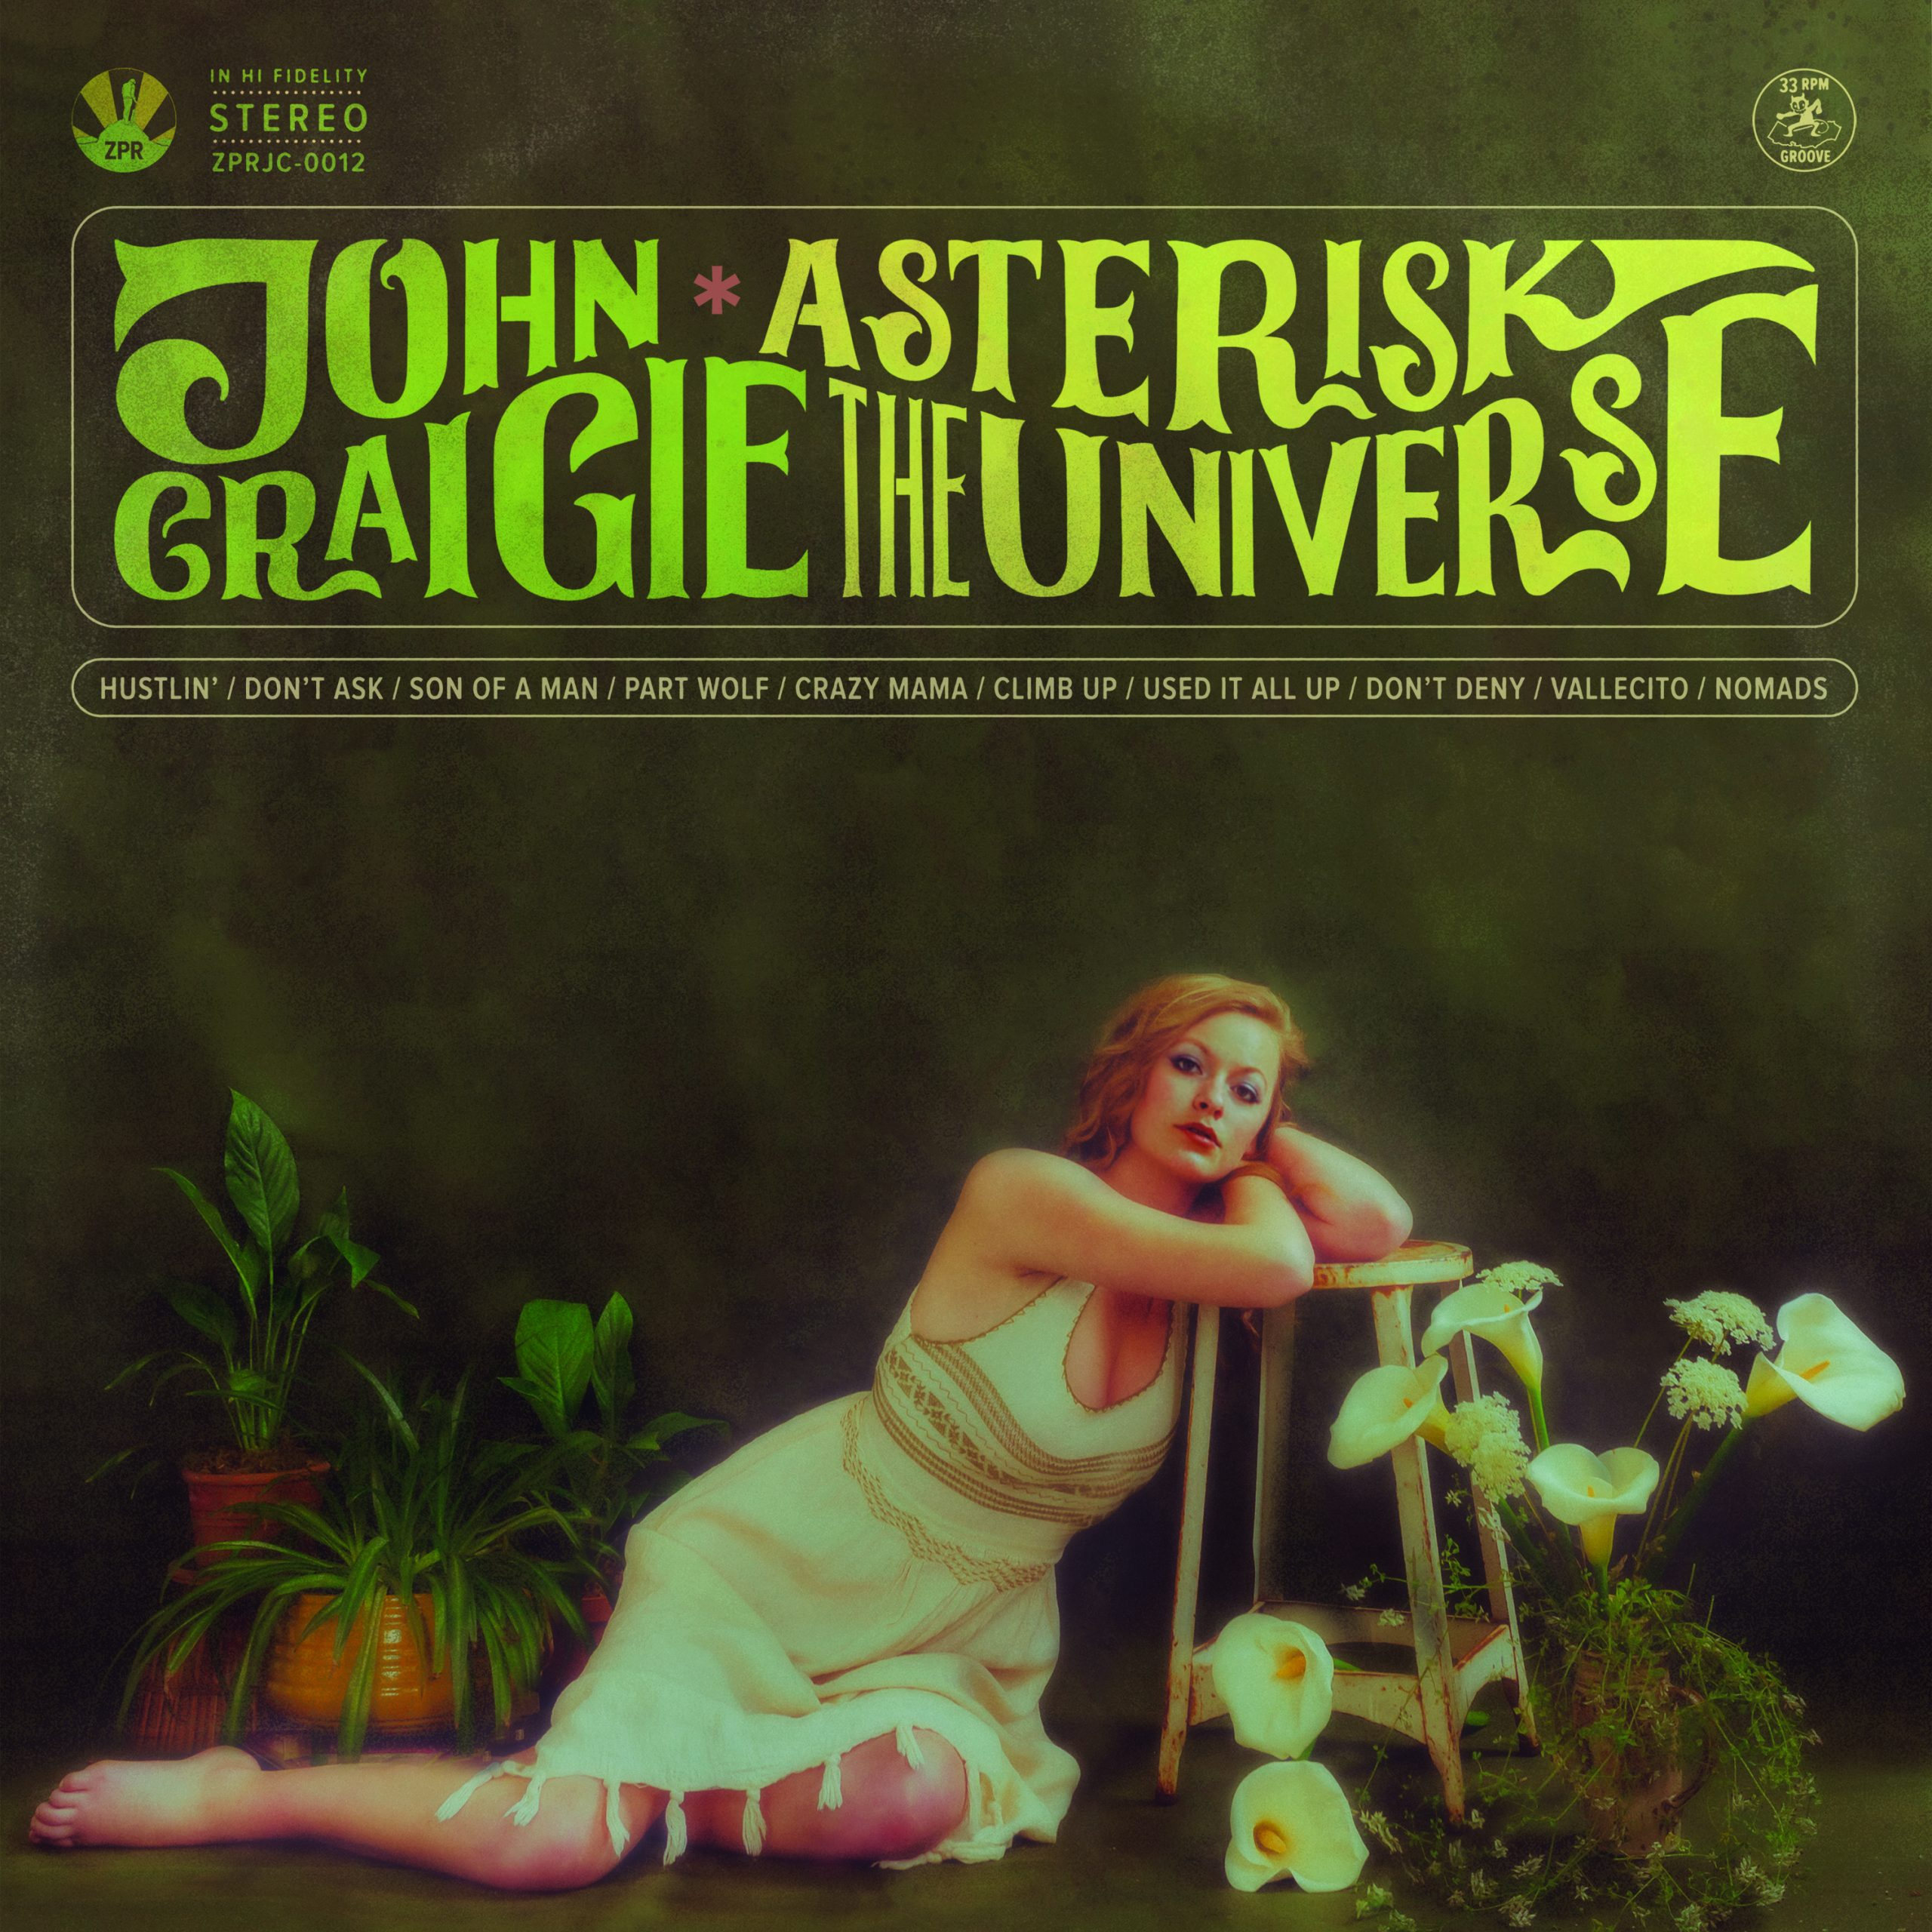 John Craigie | Asterisk the Universe | Review